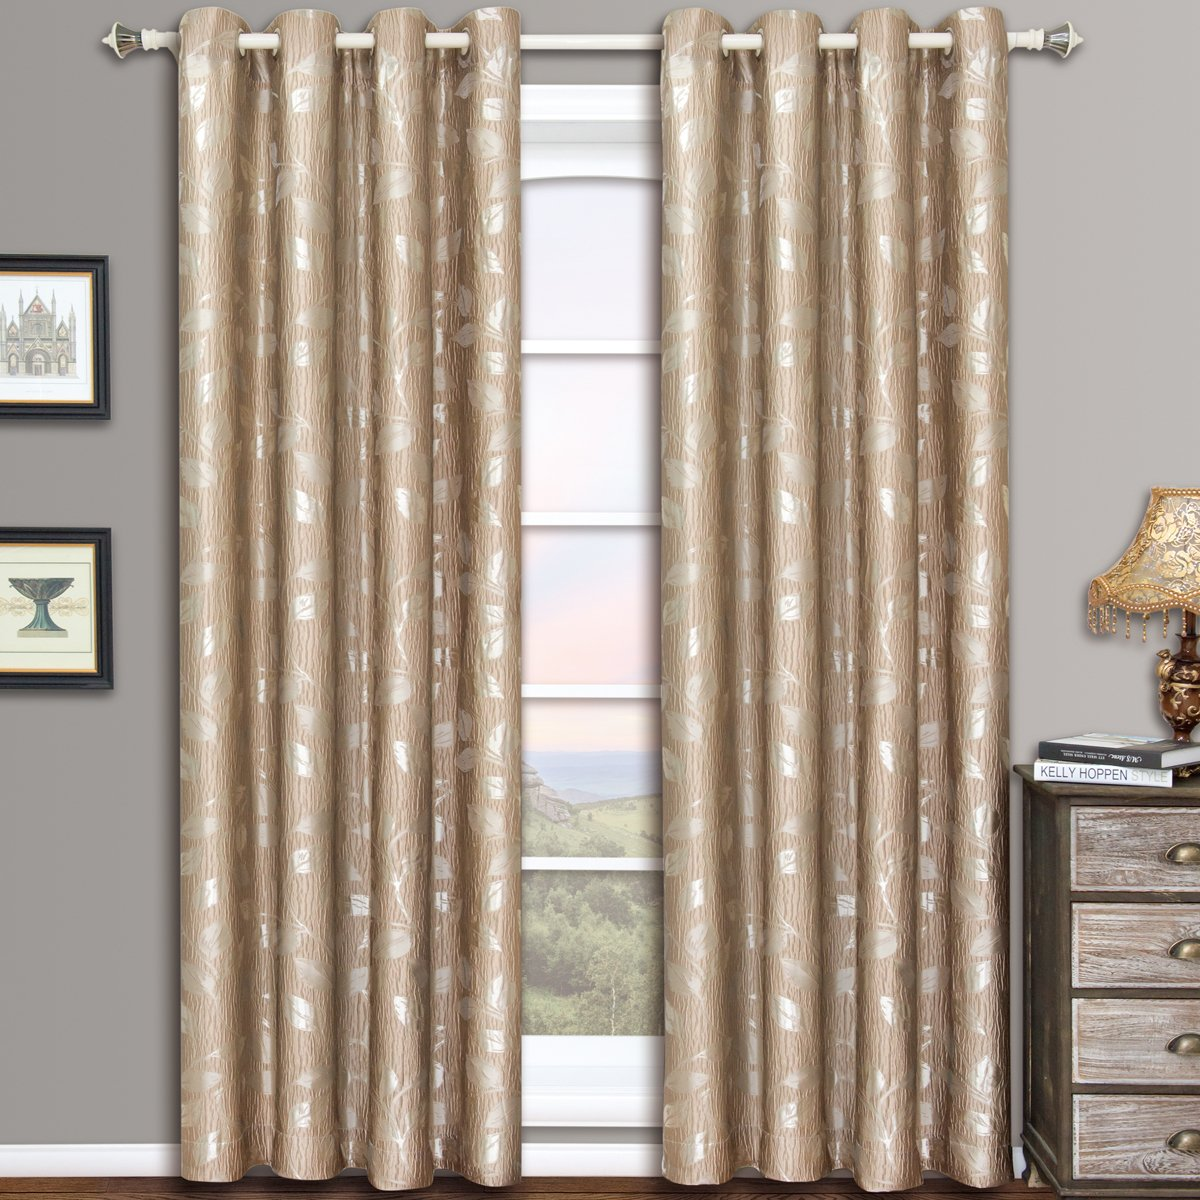 Charlotte Mocha Grommet Jacquard Window Curtain Panels, Pair / Set of 2 Panels, 52x84 inches Each, by Royal Hotel